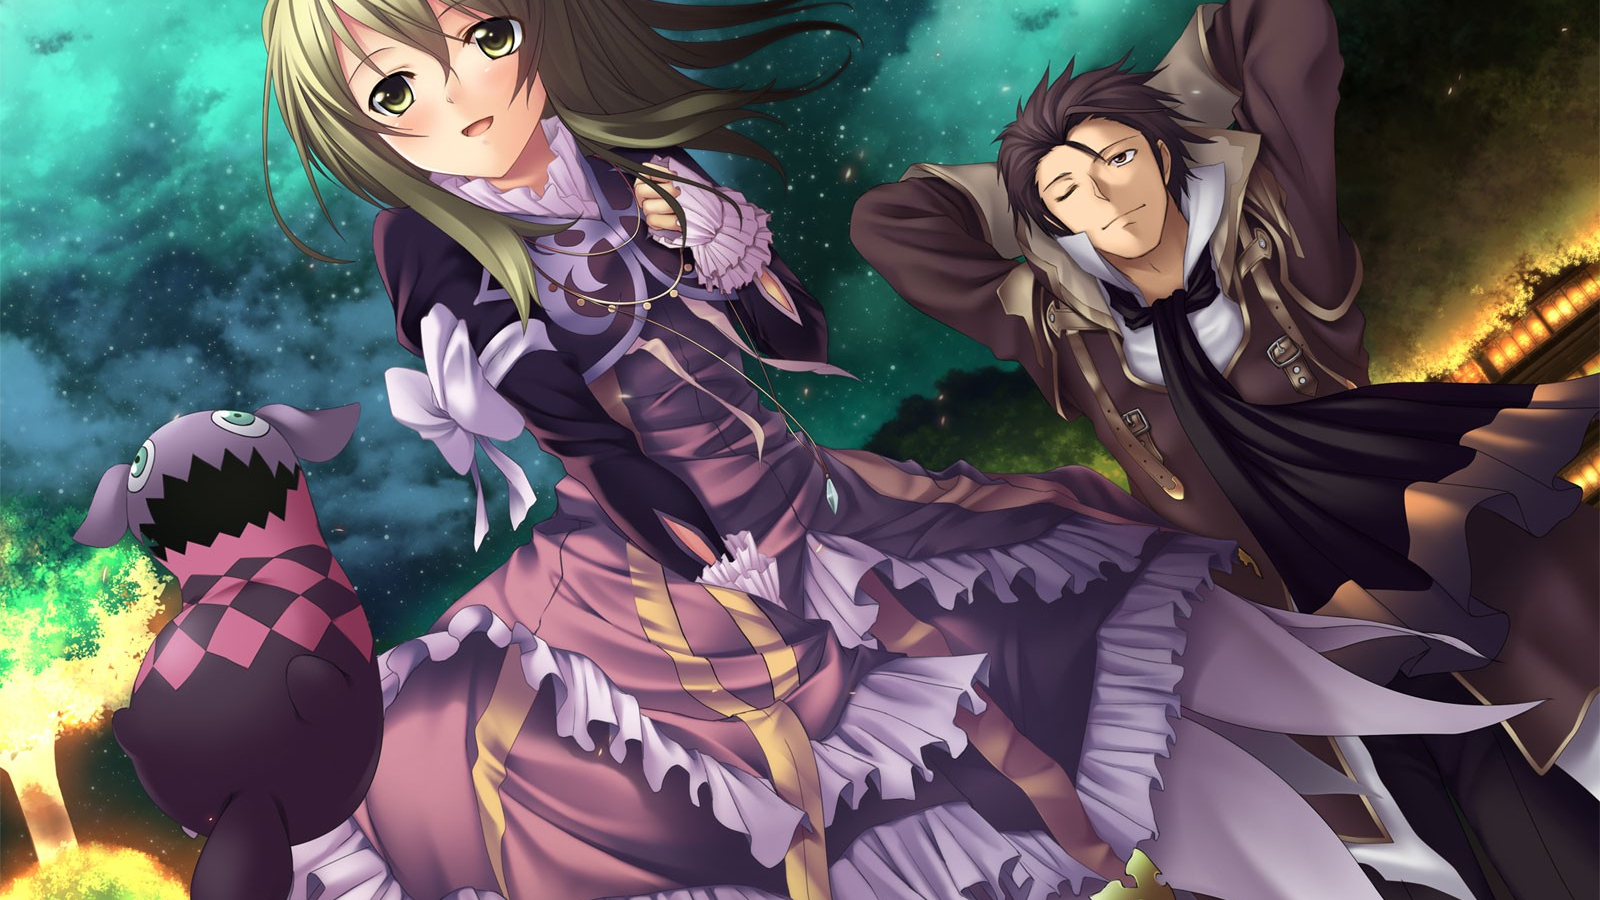 Free Download Tales Of Xillia Wallpaper 43316 1600x1200 For Your